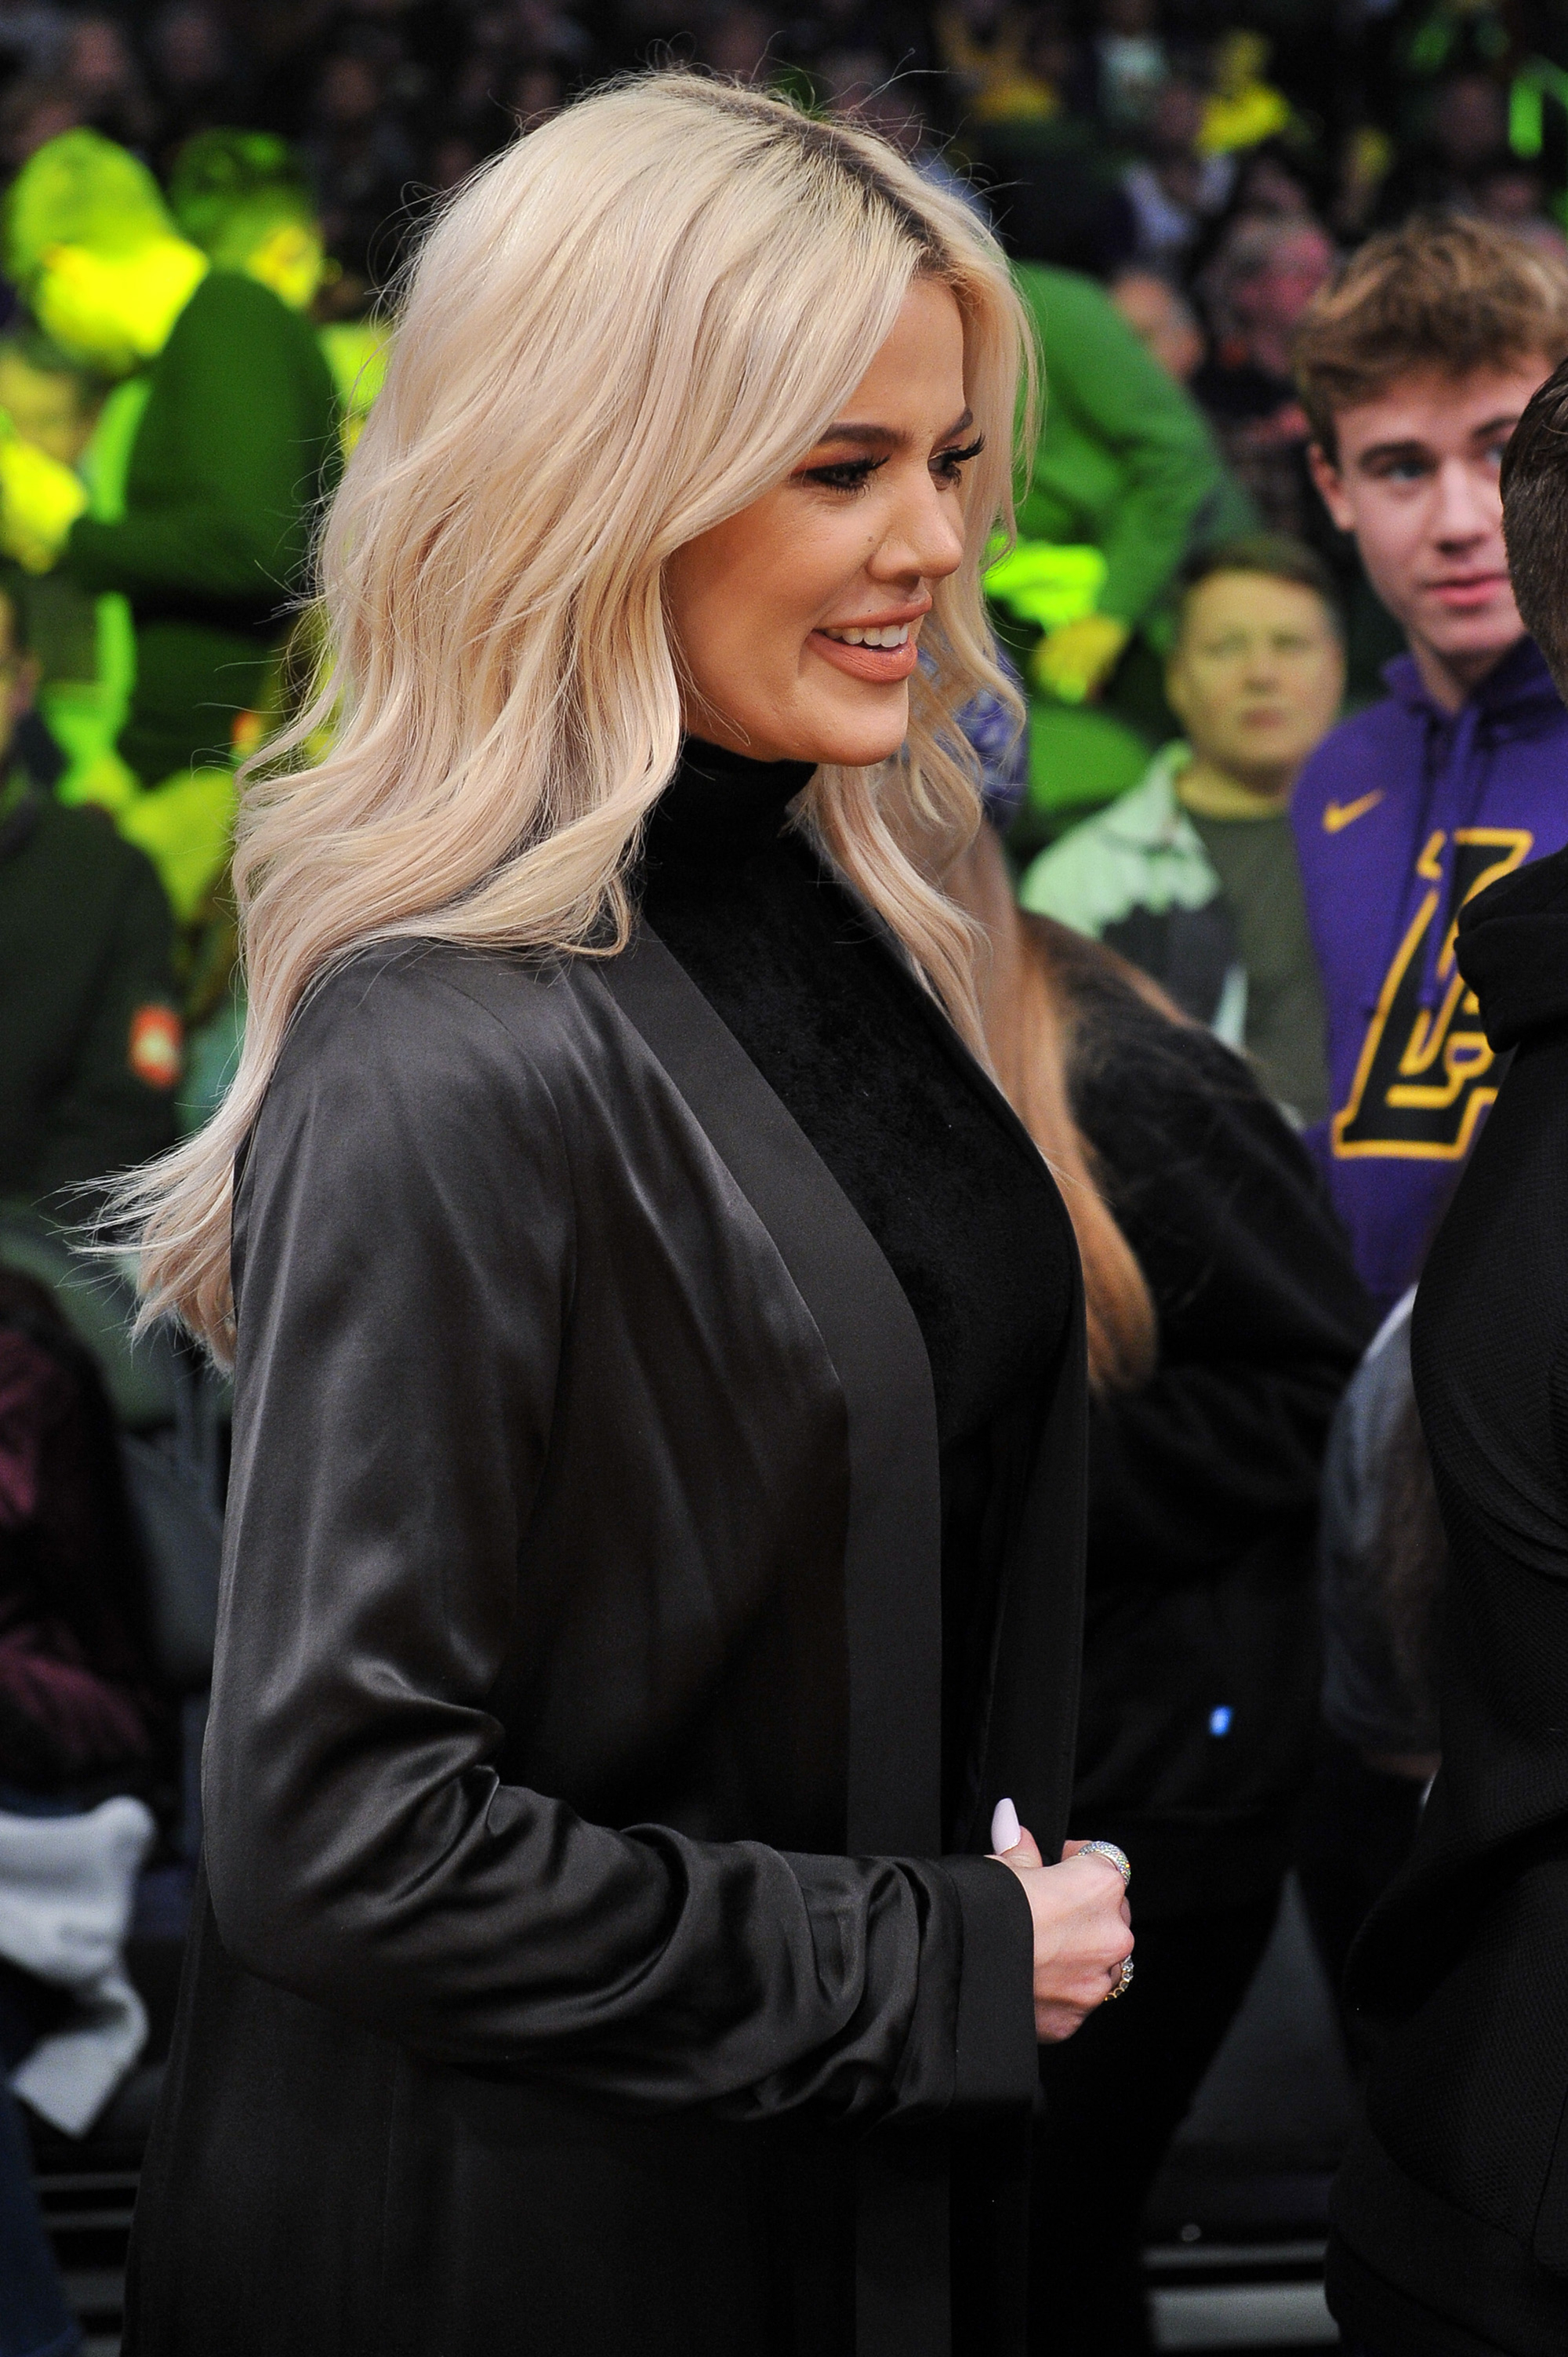 Khloe Kardashian Supports Beau Tristan Thompson Courtside at Cleveland Cavaliers Game - The reality TV personality stood tall and smiled at other attendees at the game as she held tight to a gray purse.